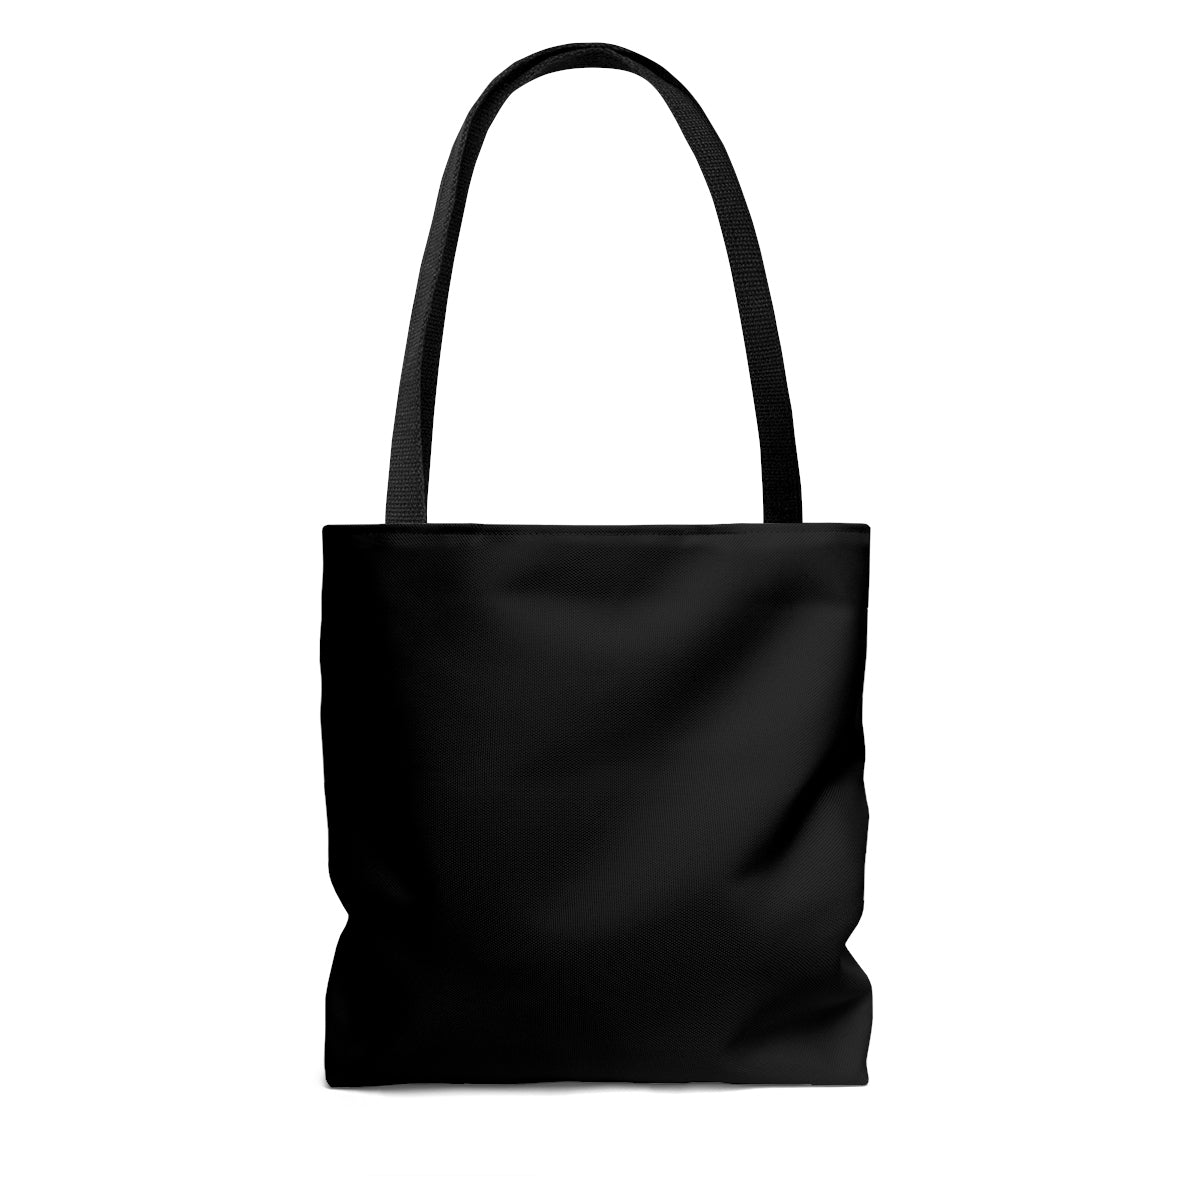 Succubae Tote Bag (Black) by fawnbomb - peachiieshop